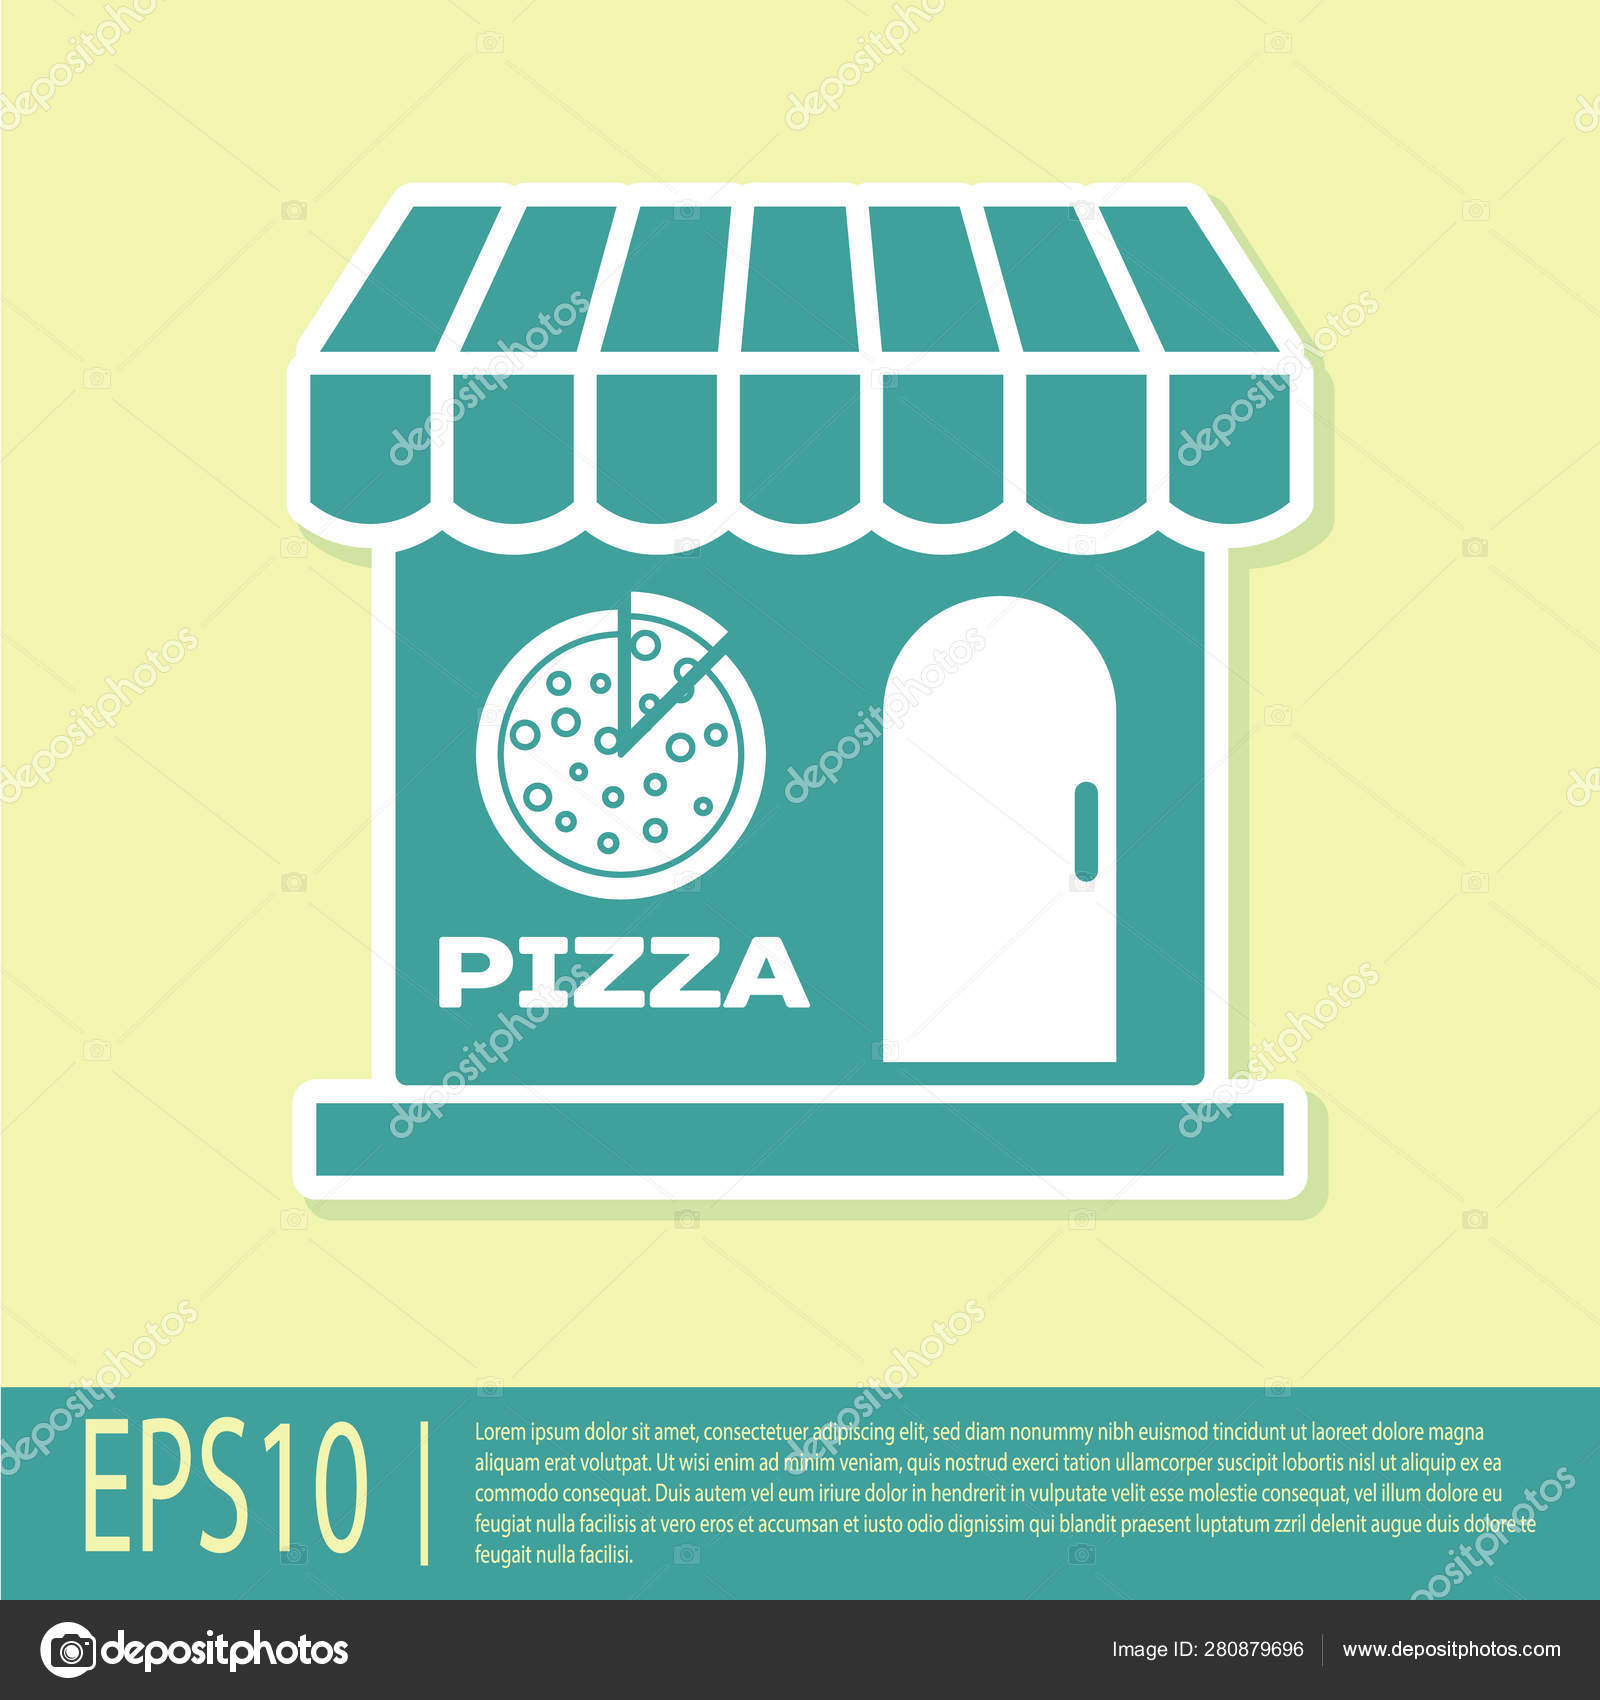 Green Pizzeria building facade icon isolated on yellow background